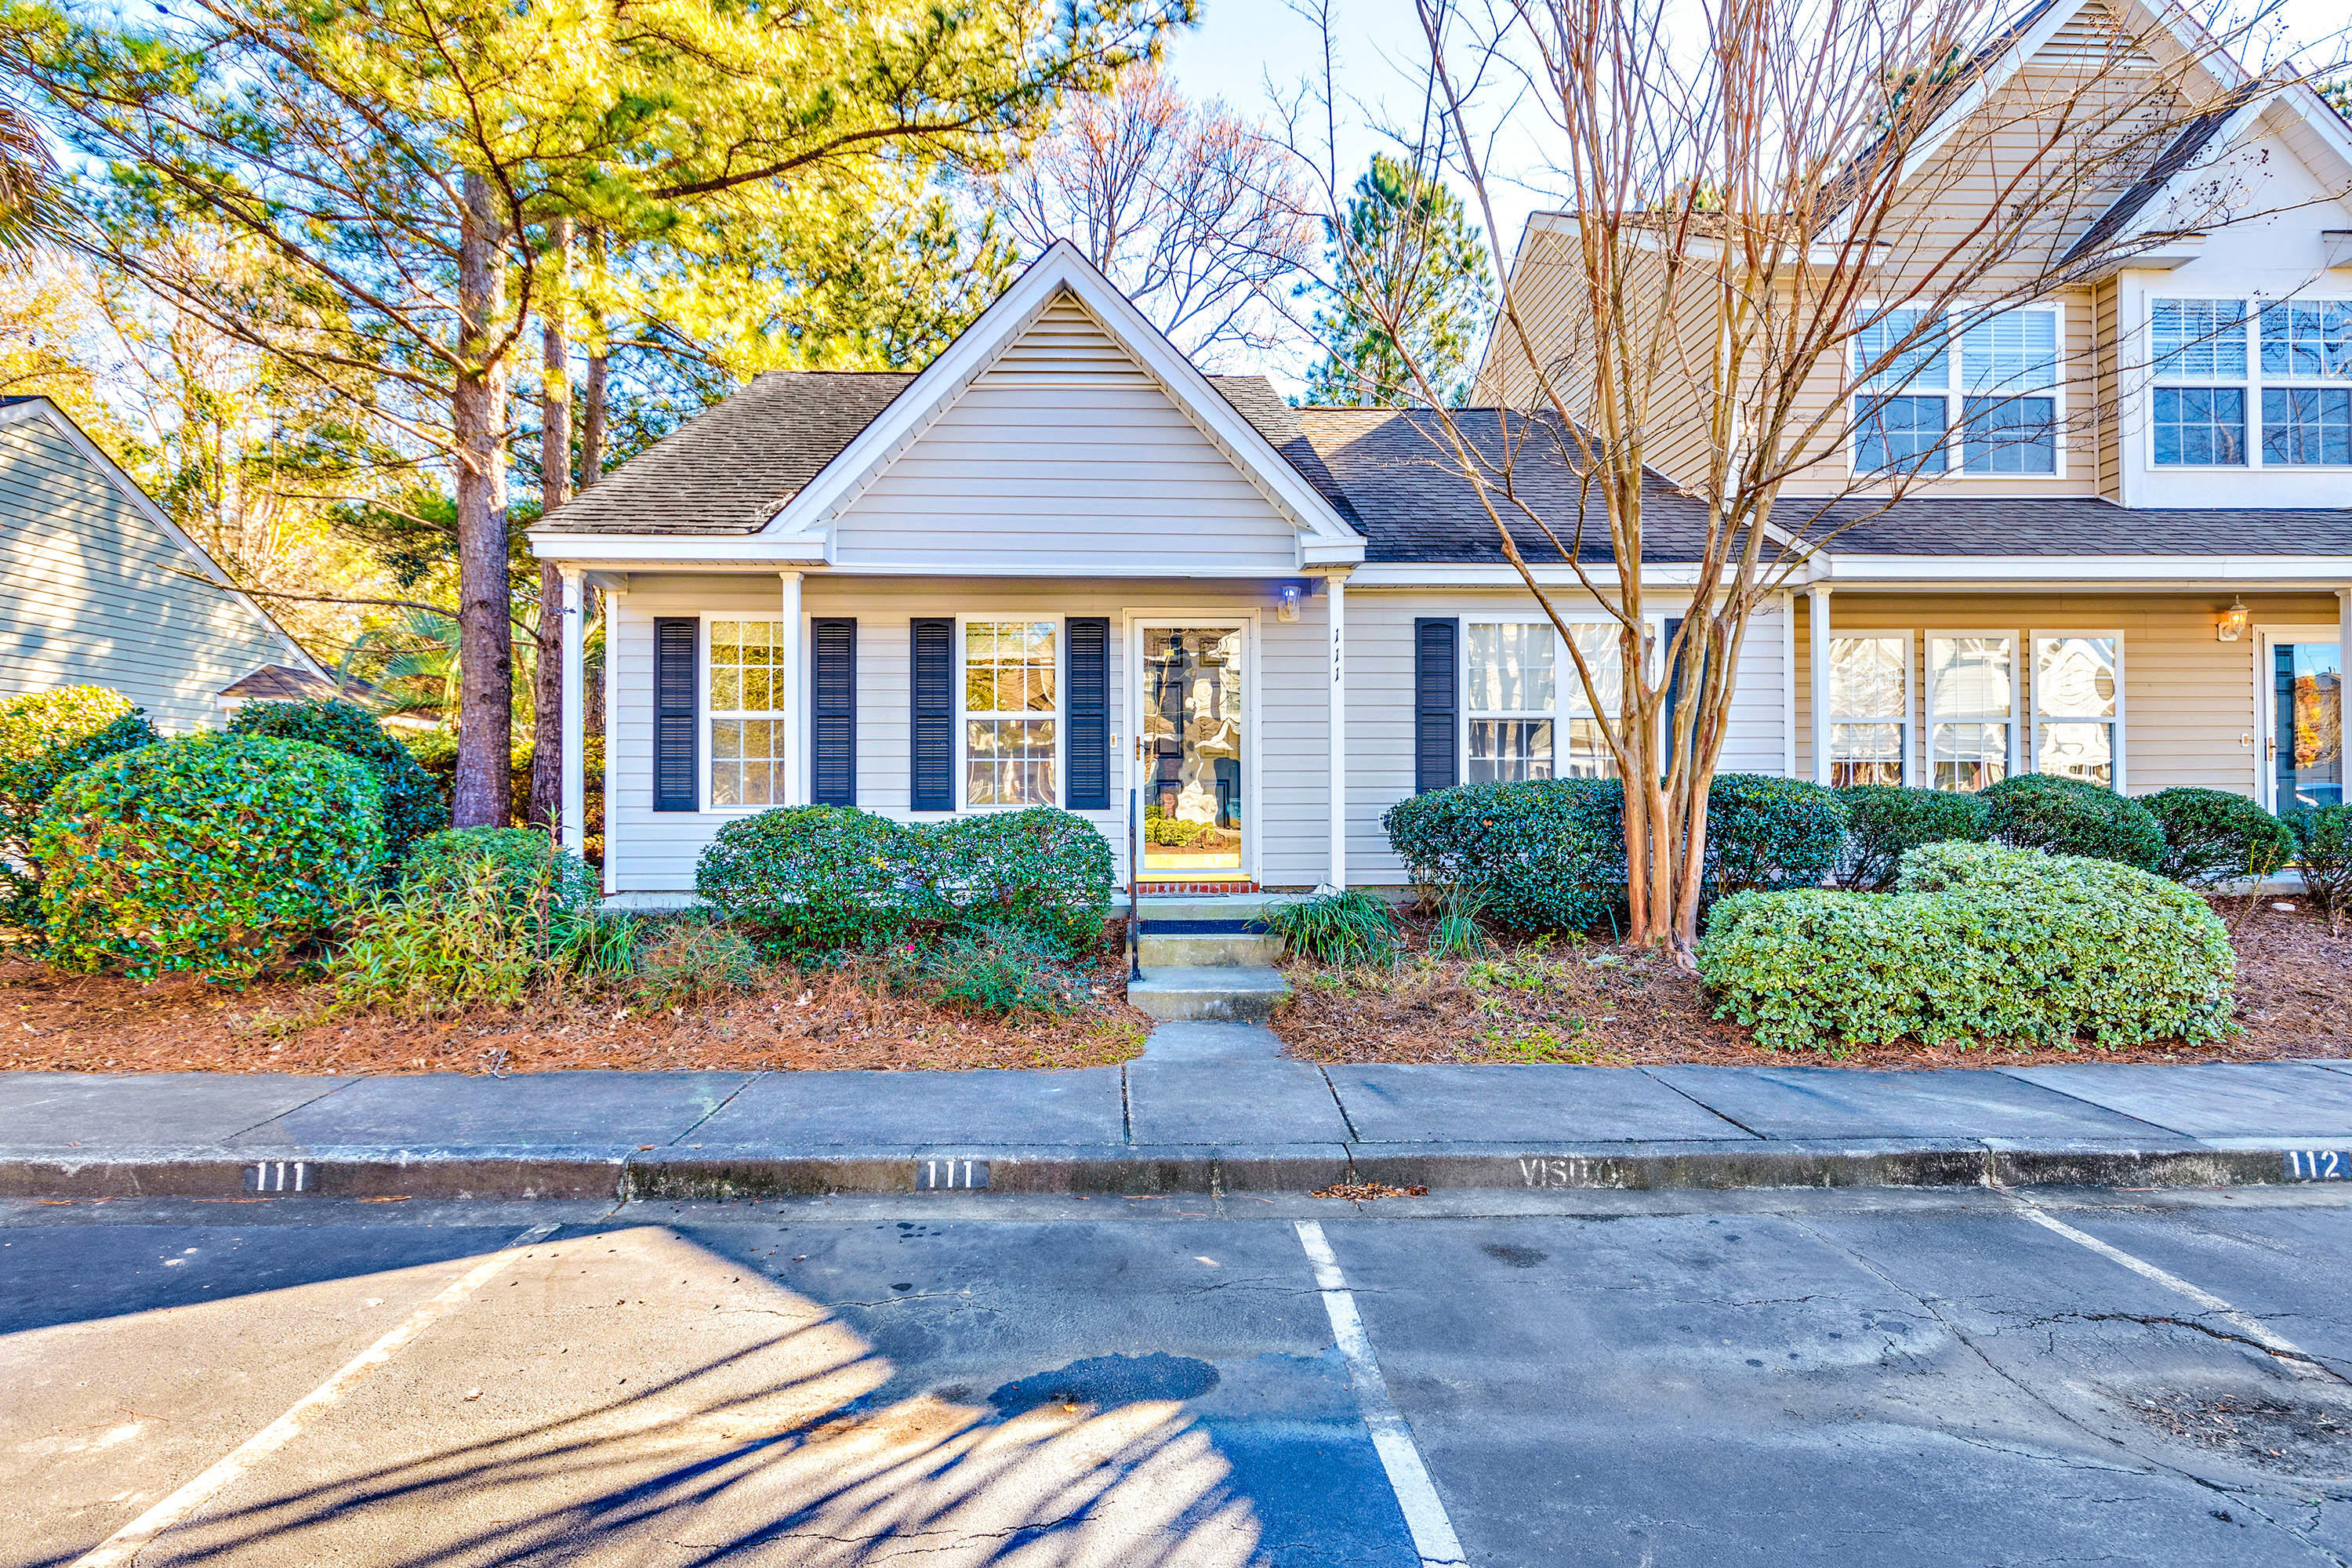 Persimmon Hill Townhouses Homes For Sale - 111 Taylor, Goose Creek, SC - 4